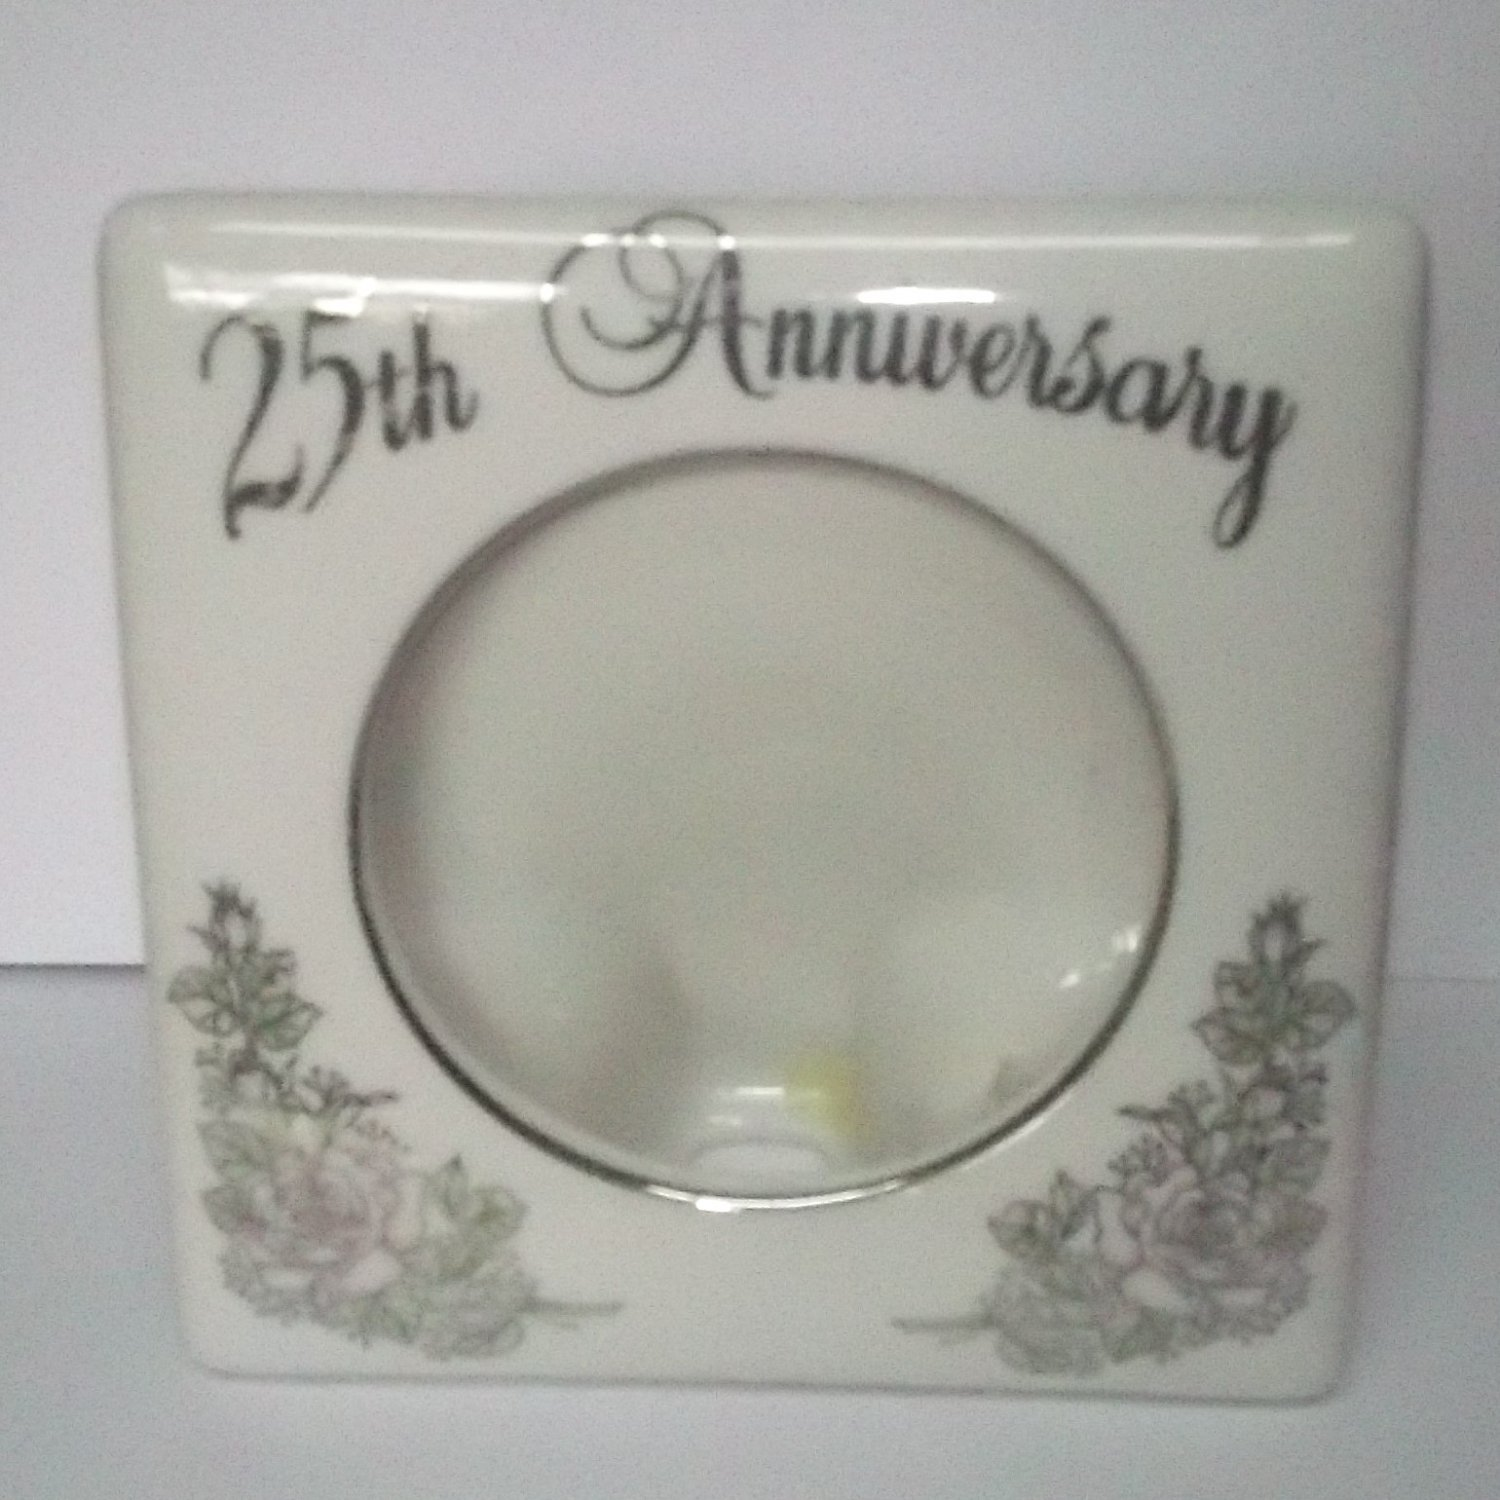 ENESCO 1983 25TH SILVER WEDDING ANNIVERSARY PORCELAIN PHOTO FRAME